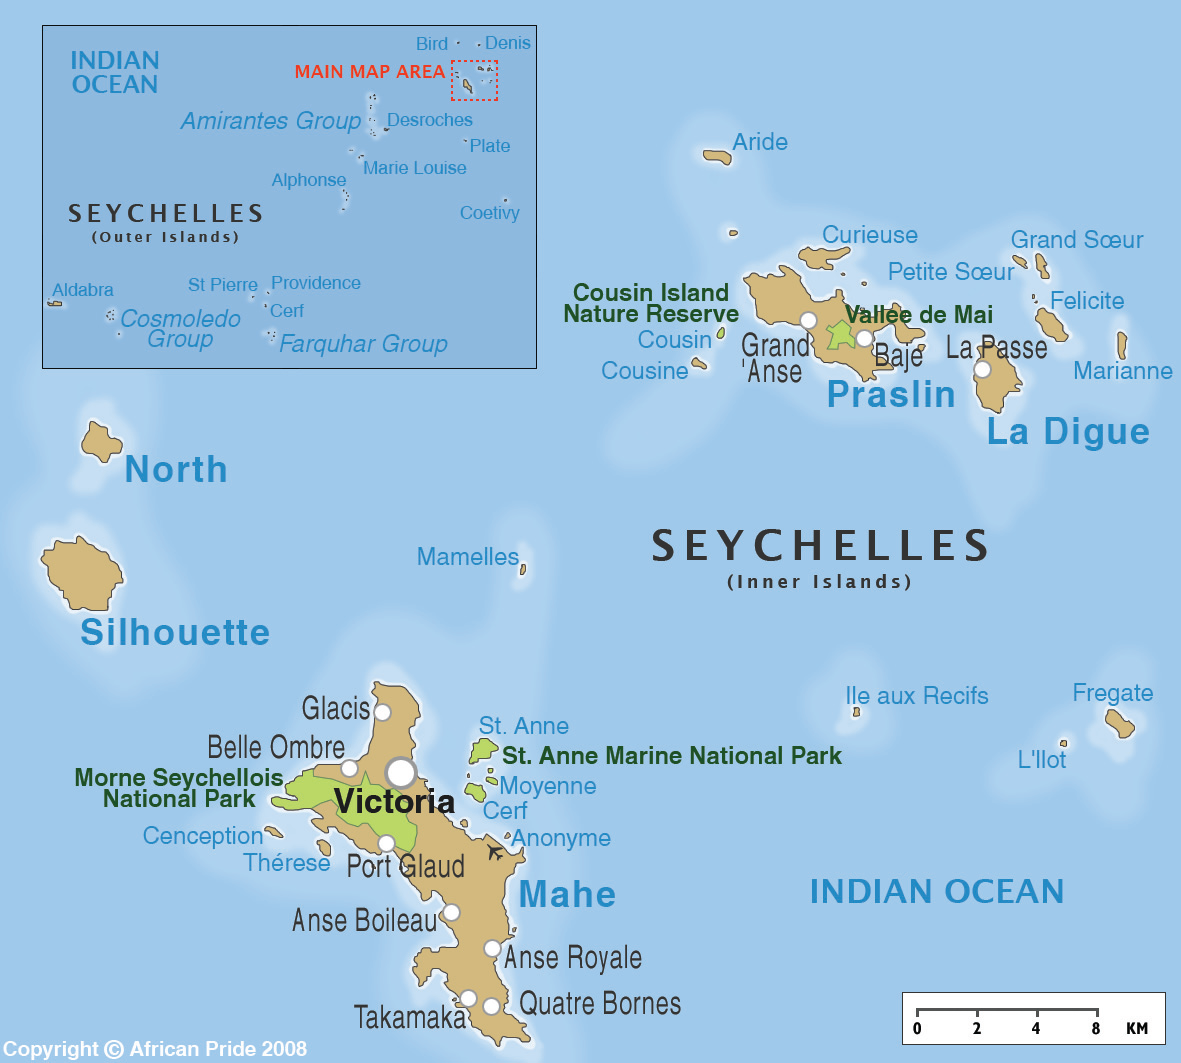 Image Detail for Seychelles Travel Places Ive been want to